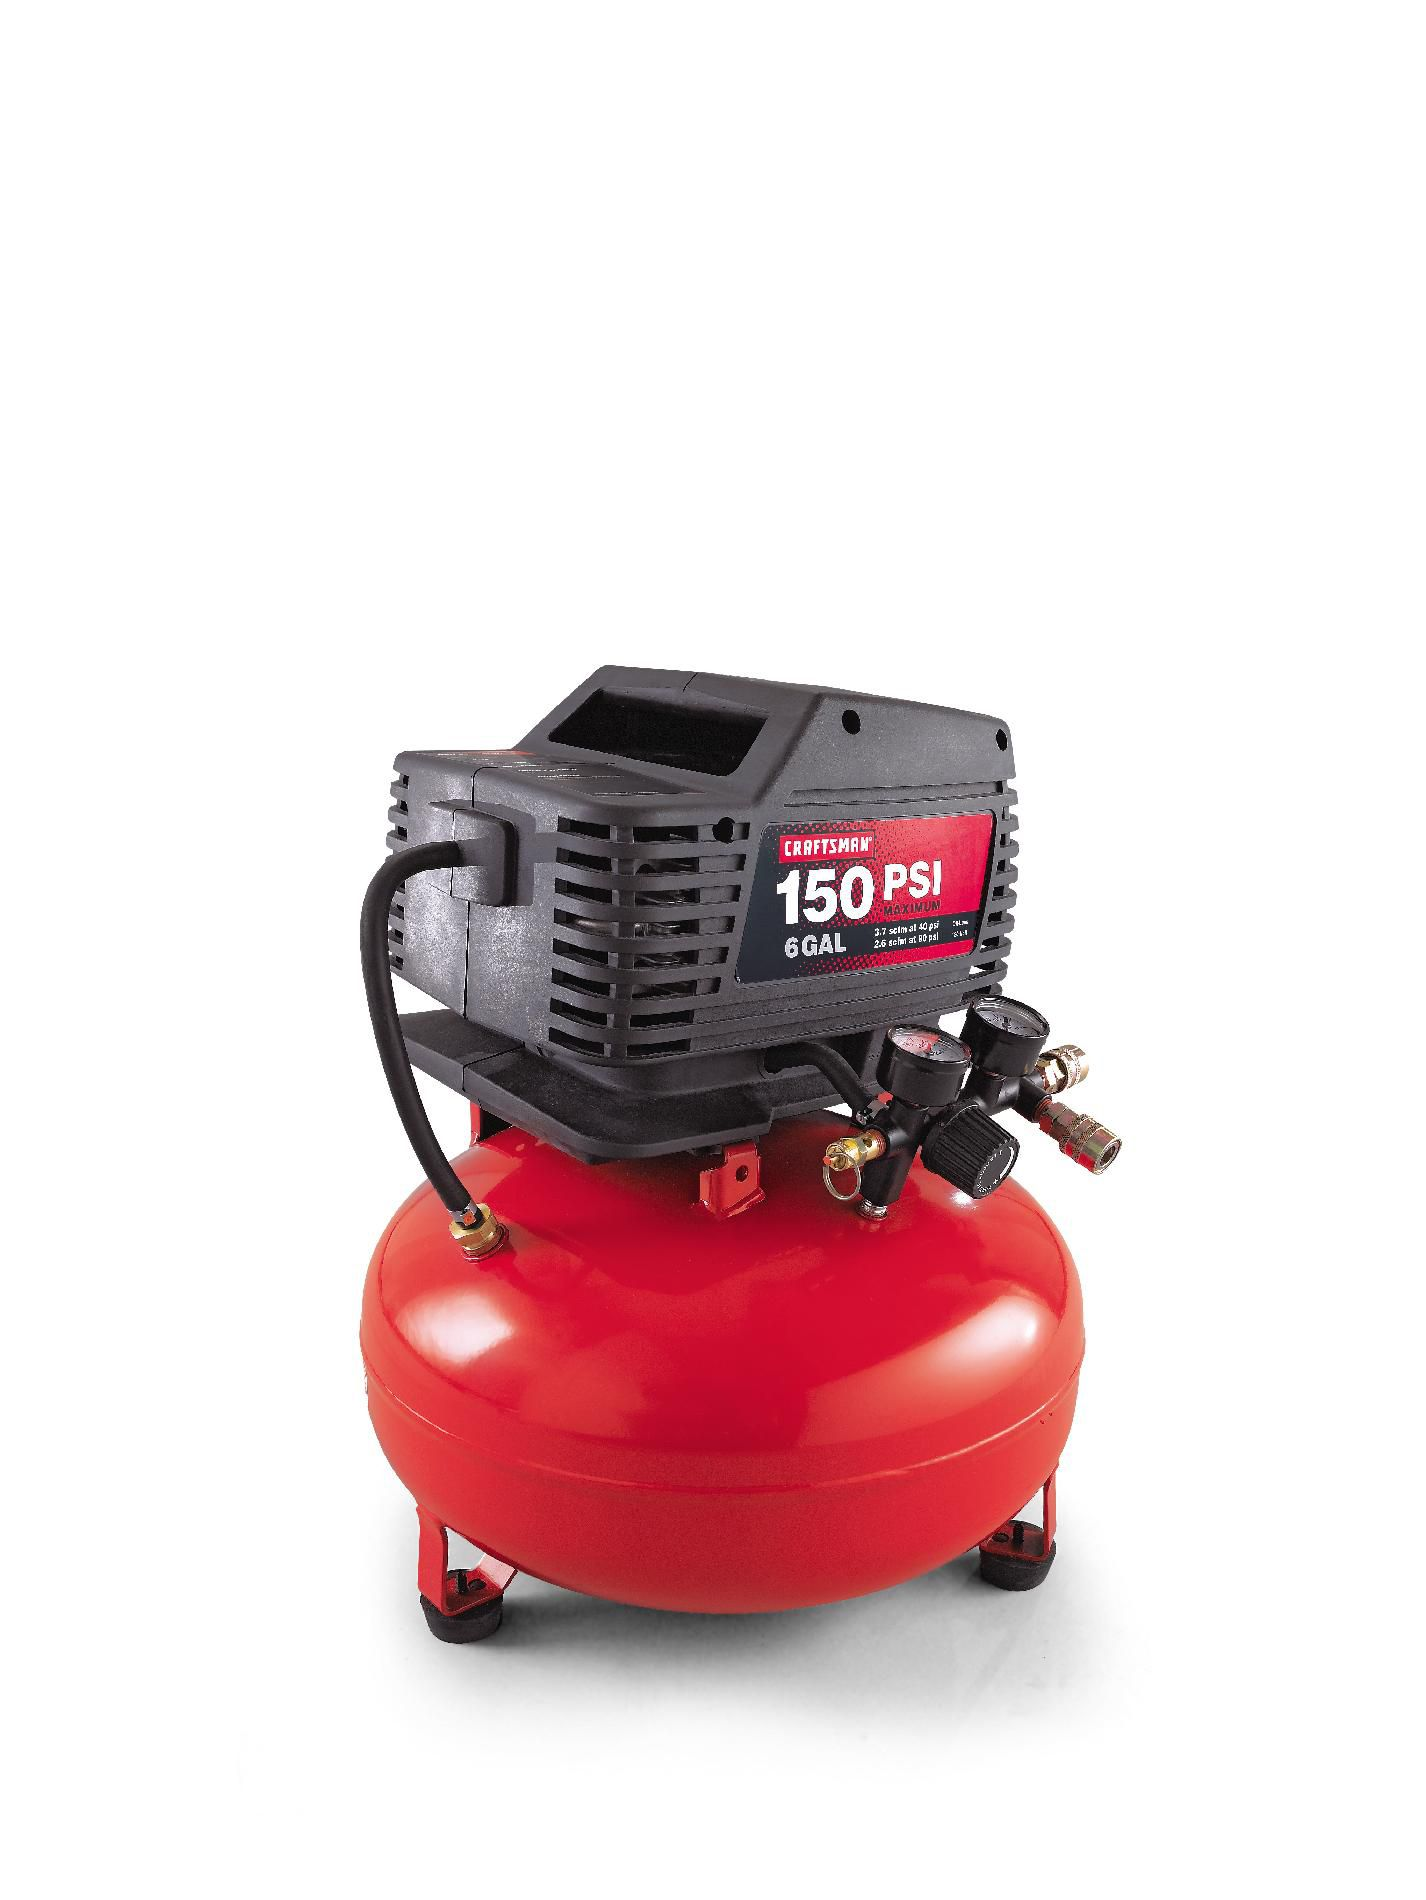 Craftsman 6 Gallon Pancake Air Compressor